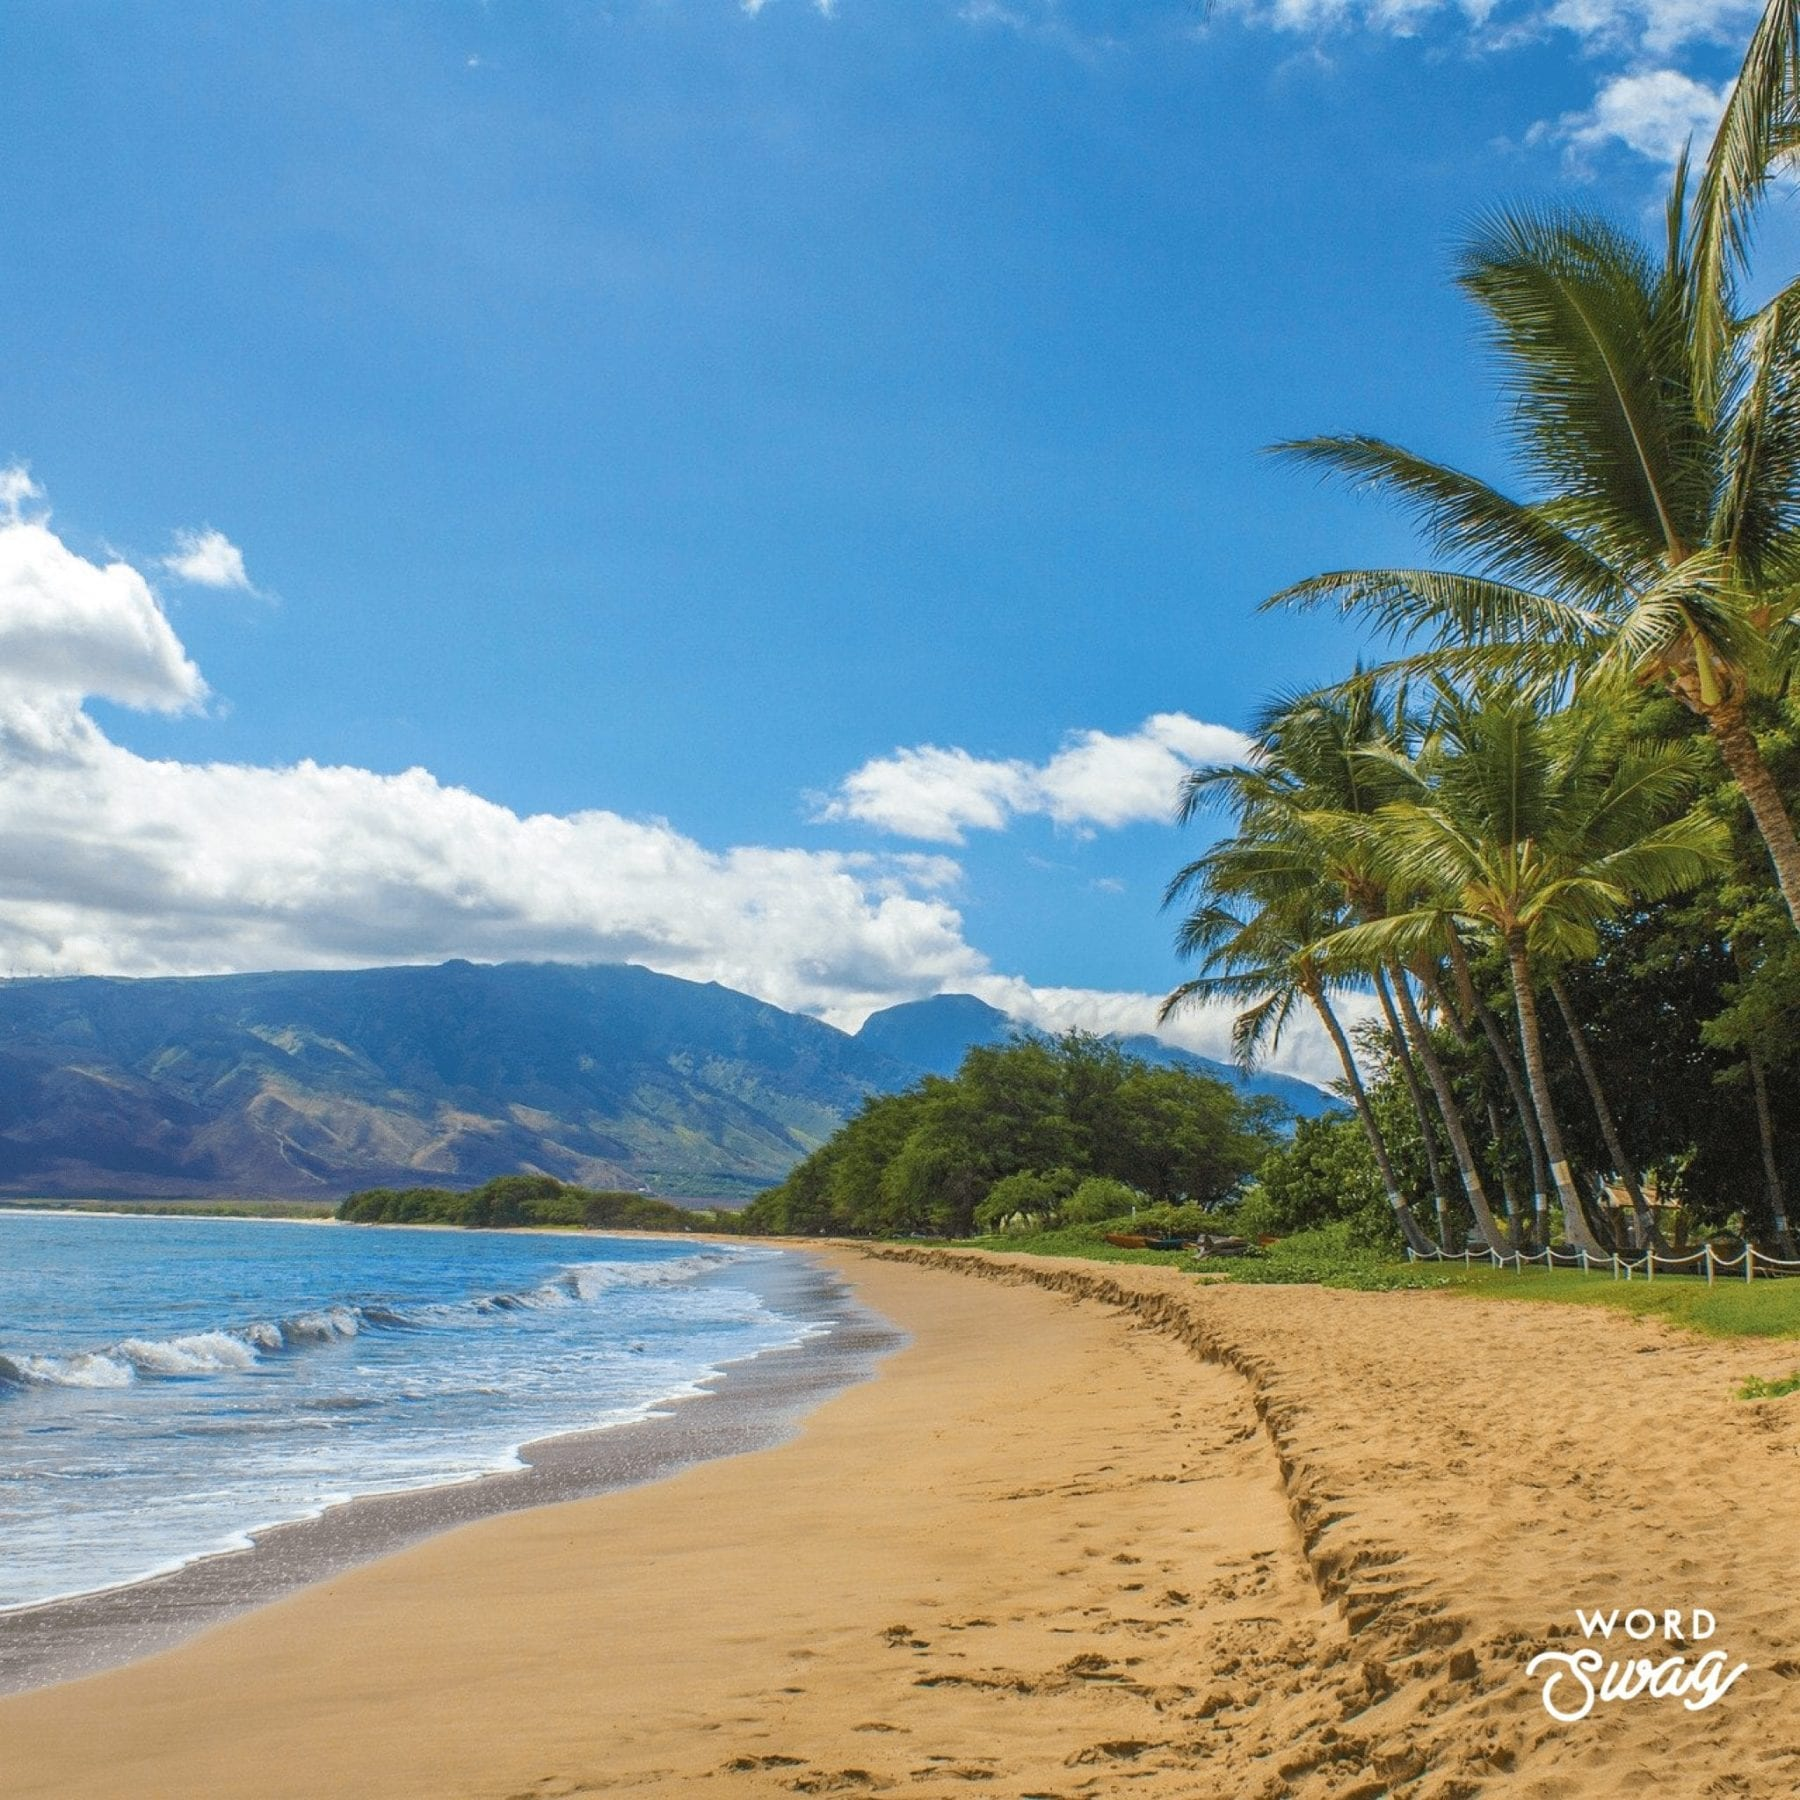 One Day in Maui